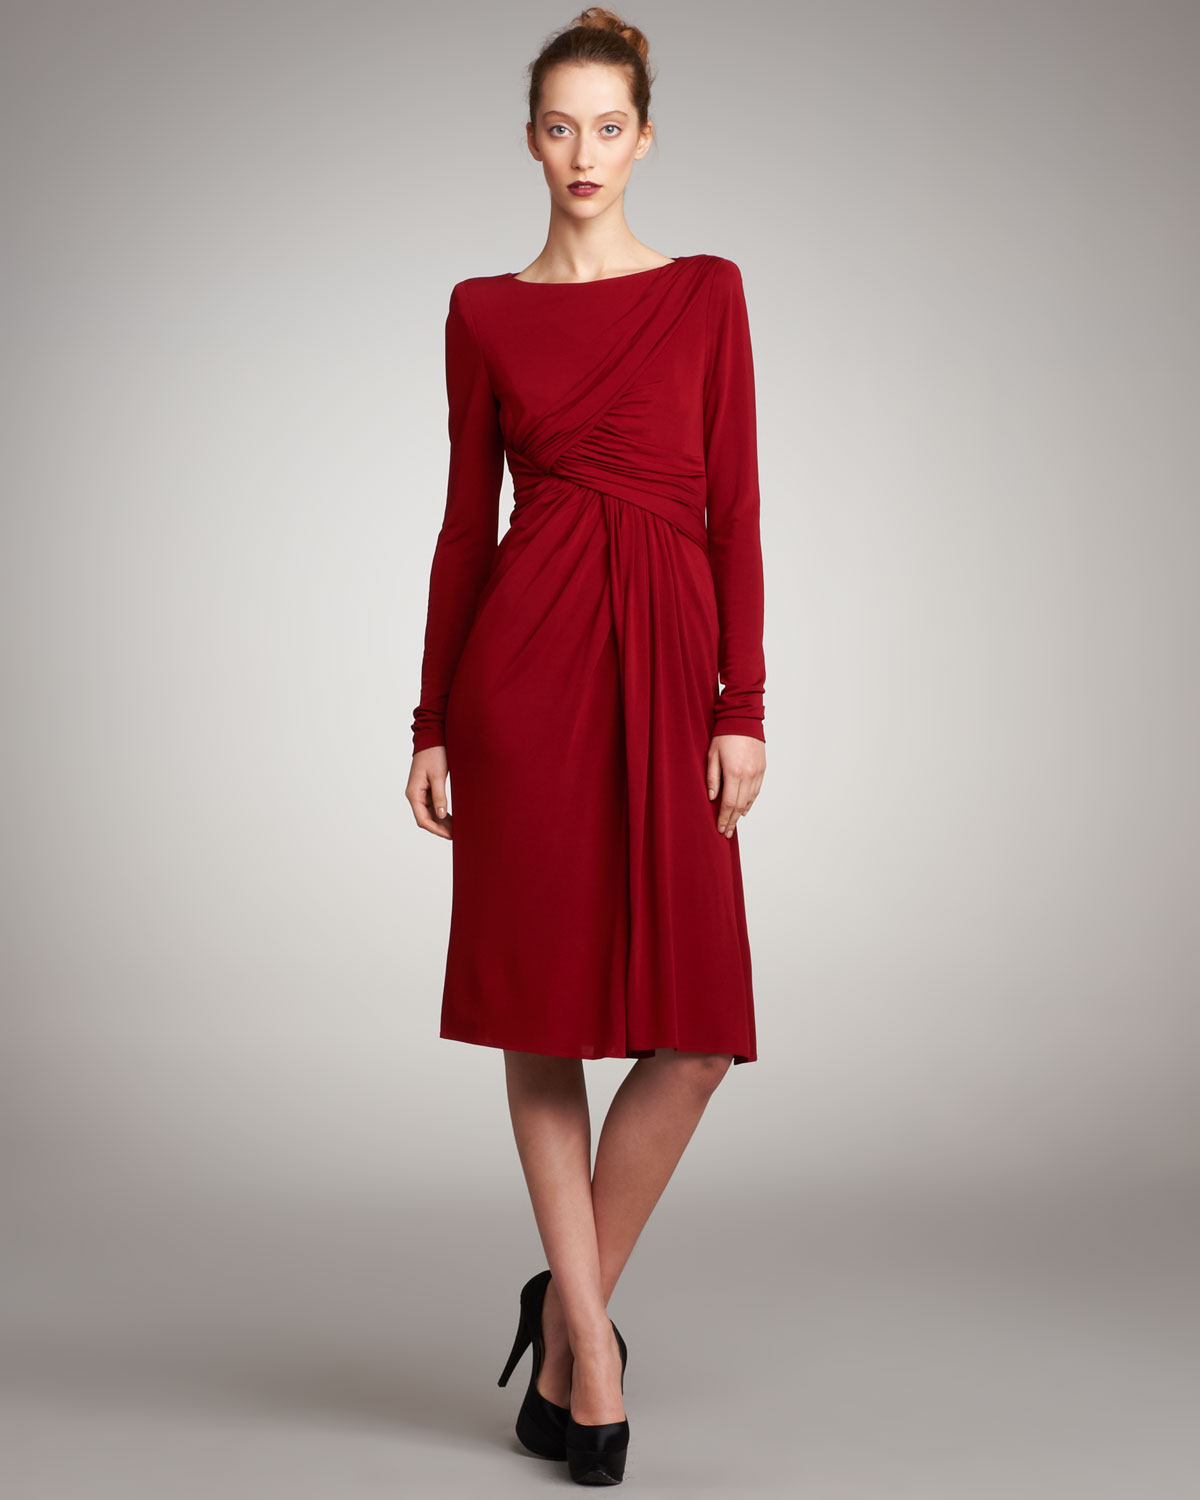 Lyst - Elie Saab Draped Jersey Cocktail Dress in Red